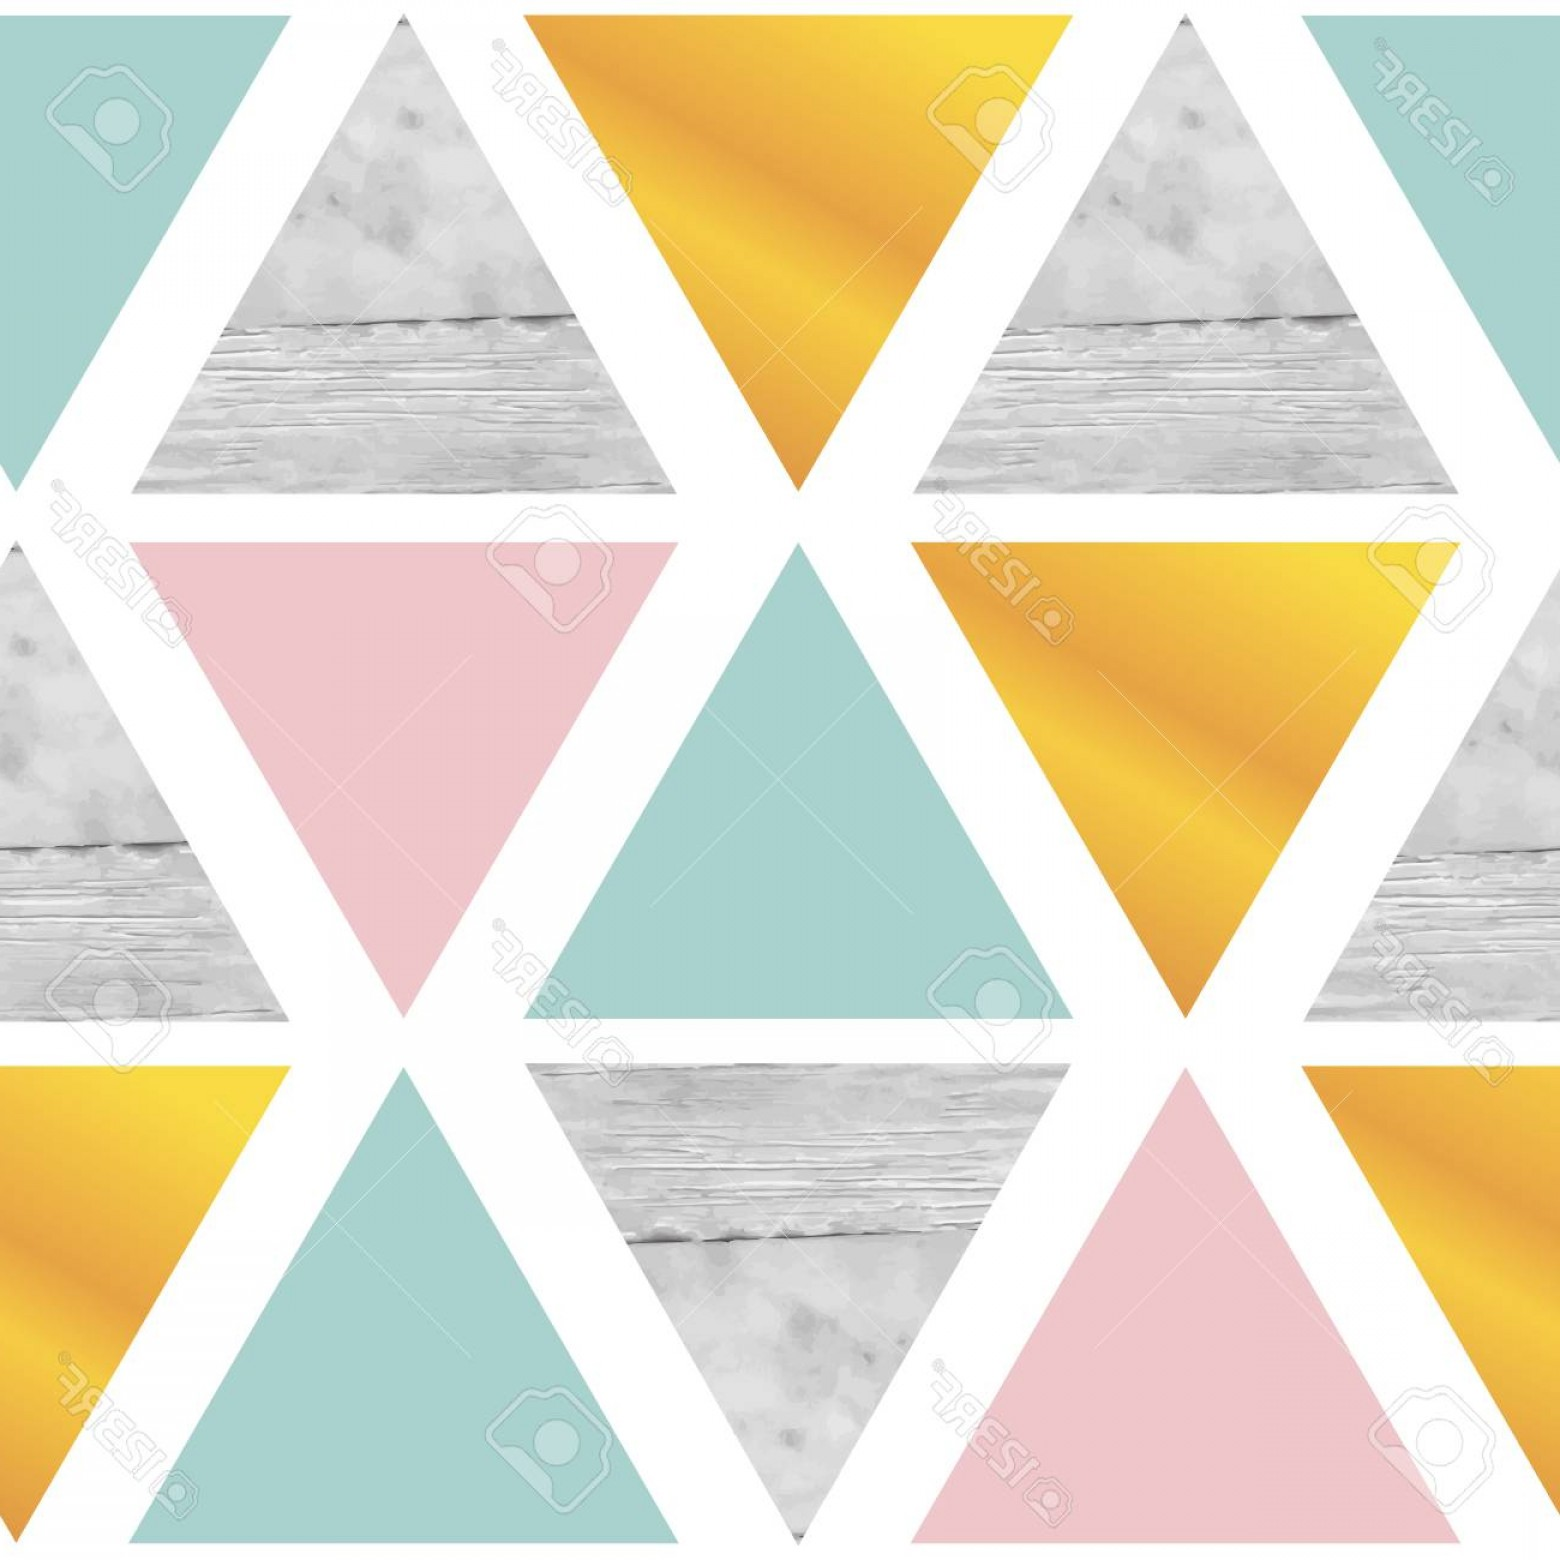 Marble With Gold Background Vector: Photostock Vector Triangular Geometrical Background With Marble Gold Pink Mint Green Color On White Background Vector